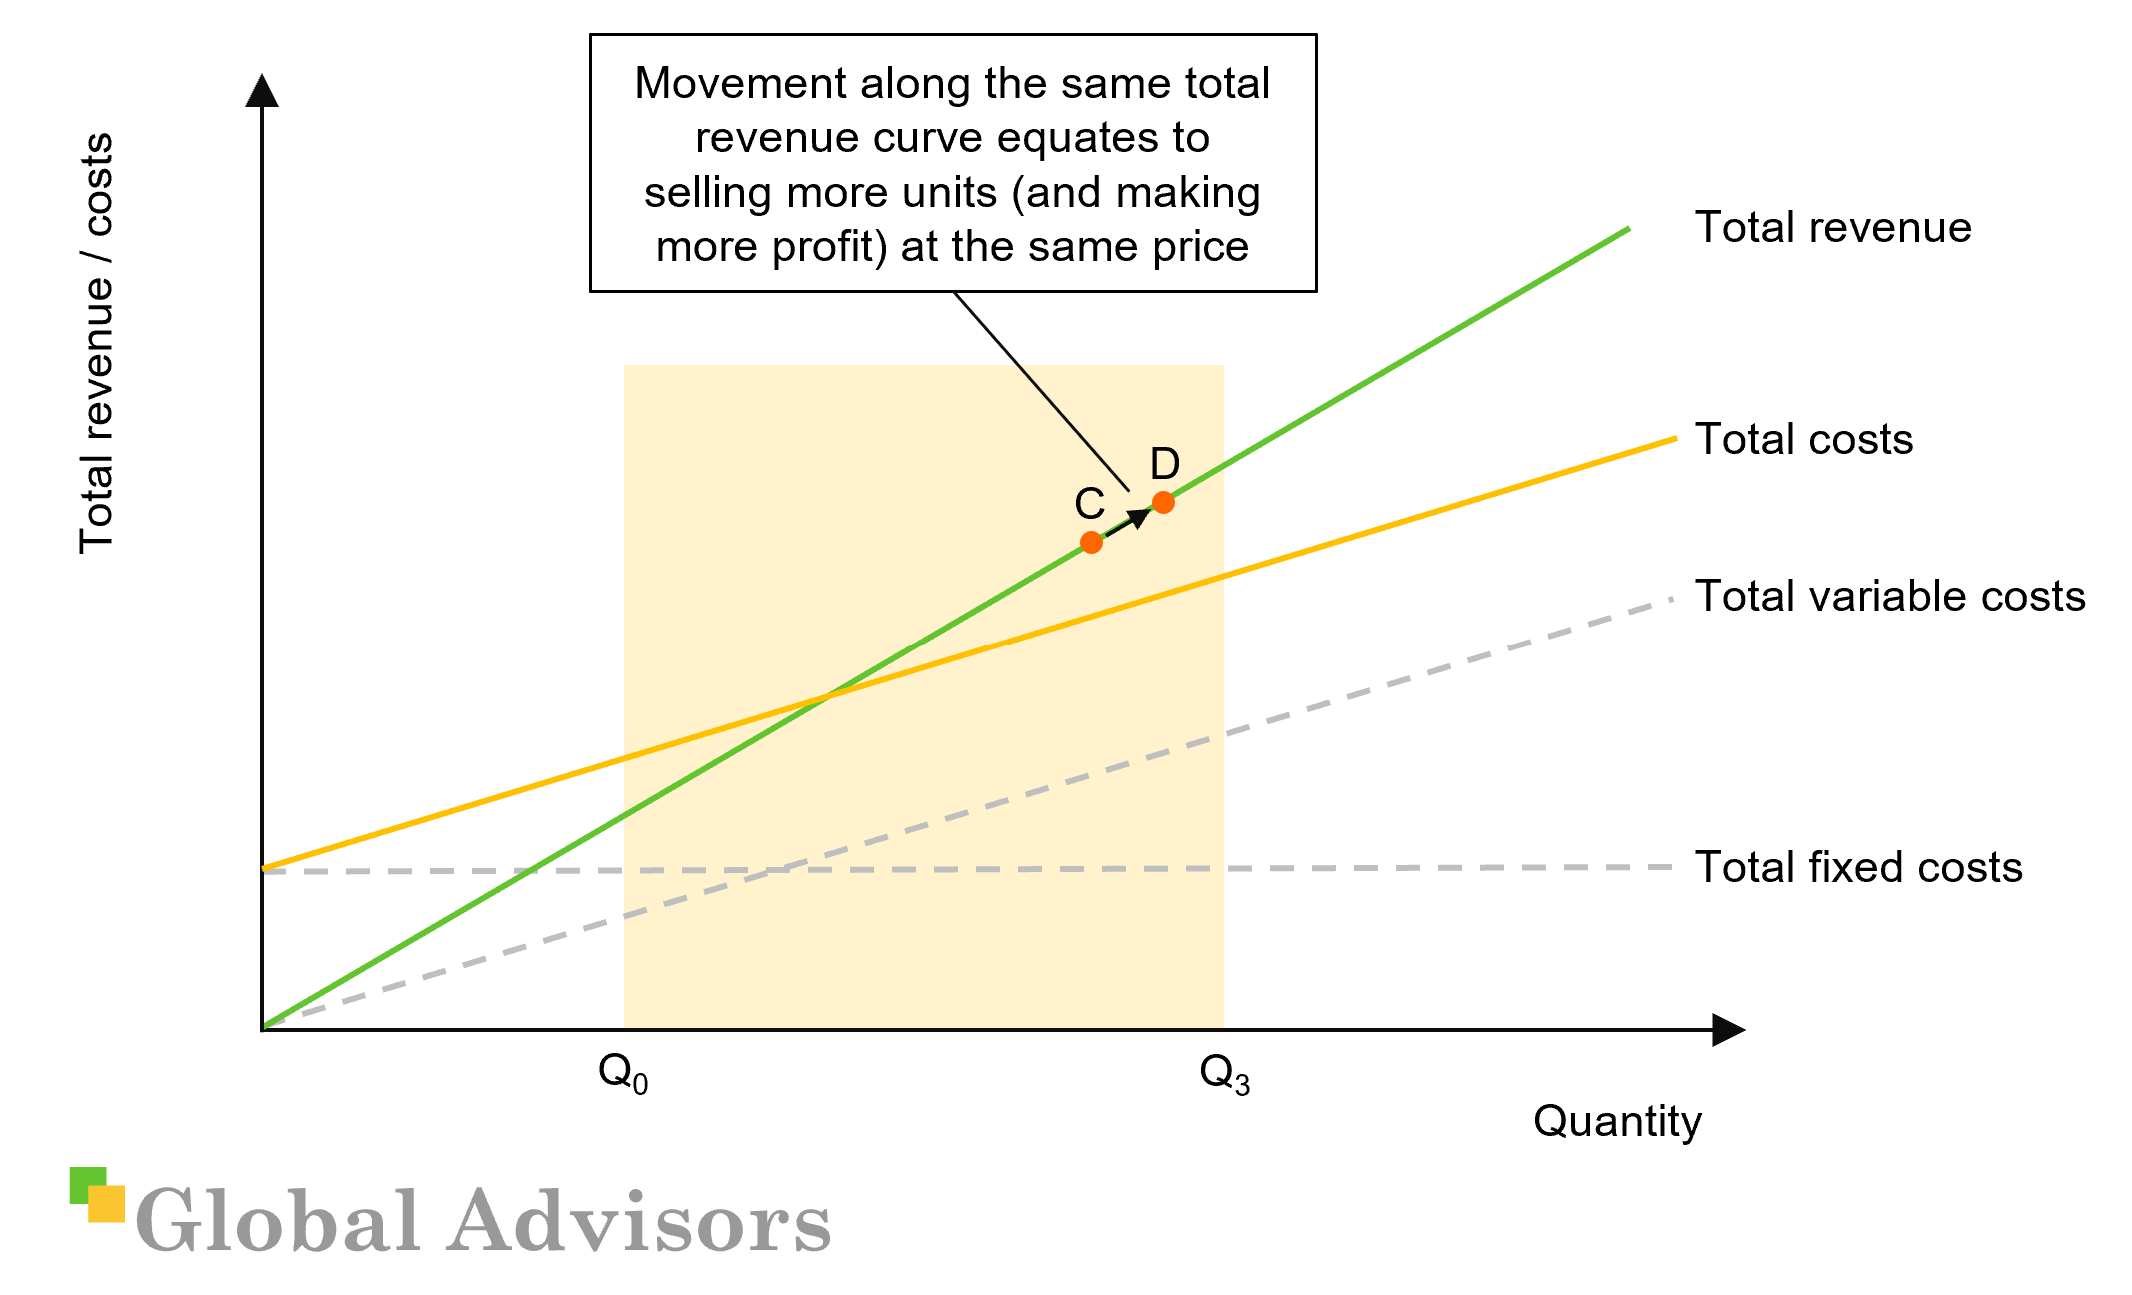 A basic CVP diagram with movement along the existing total revenue curve